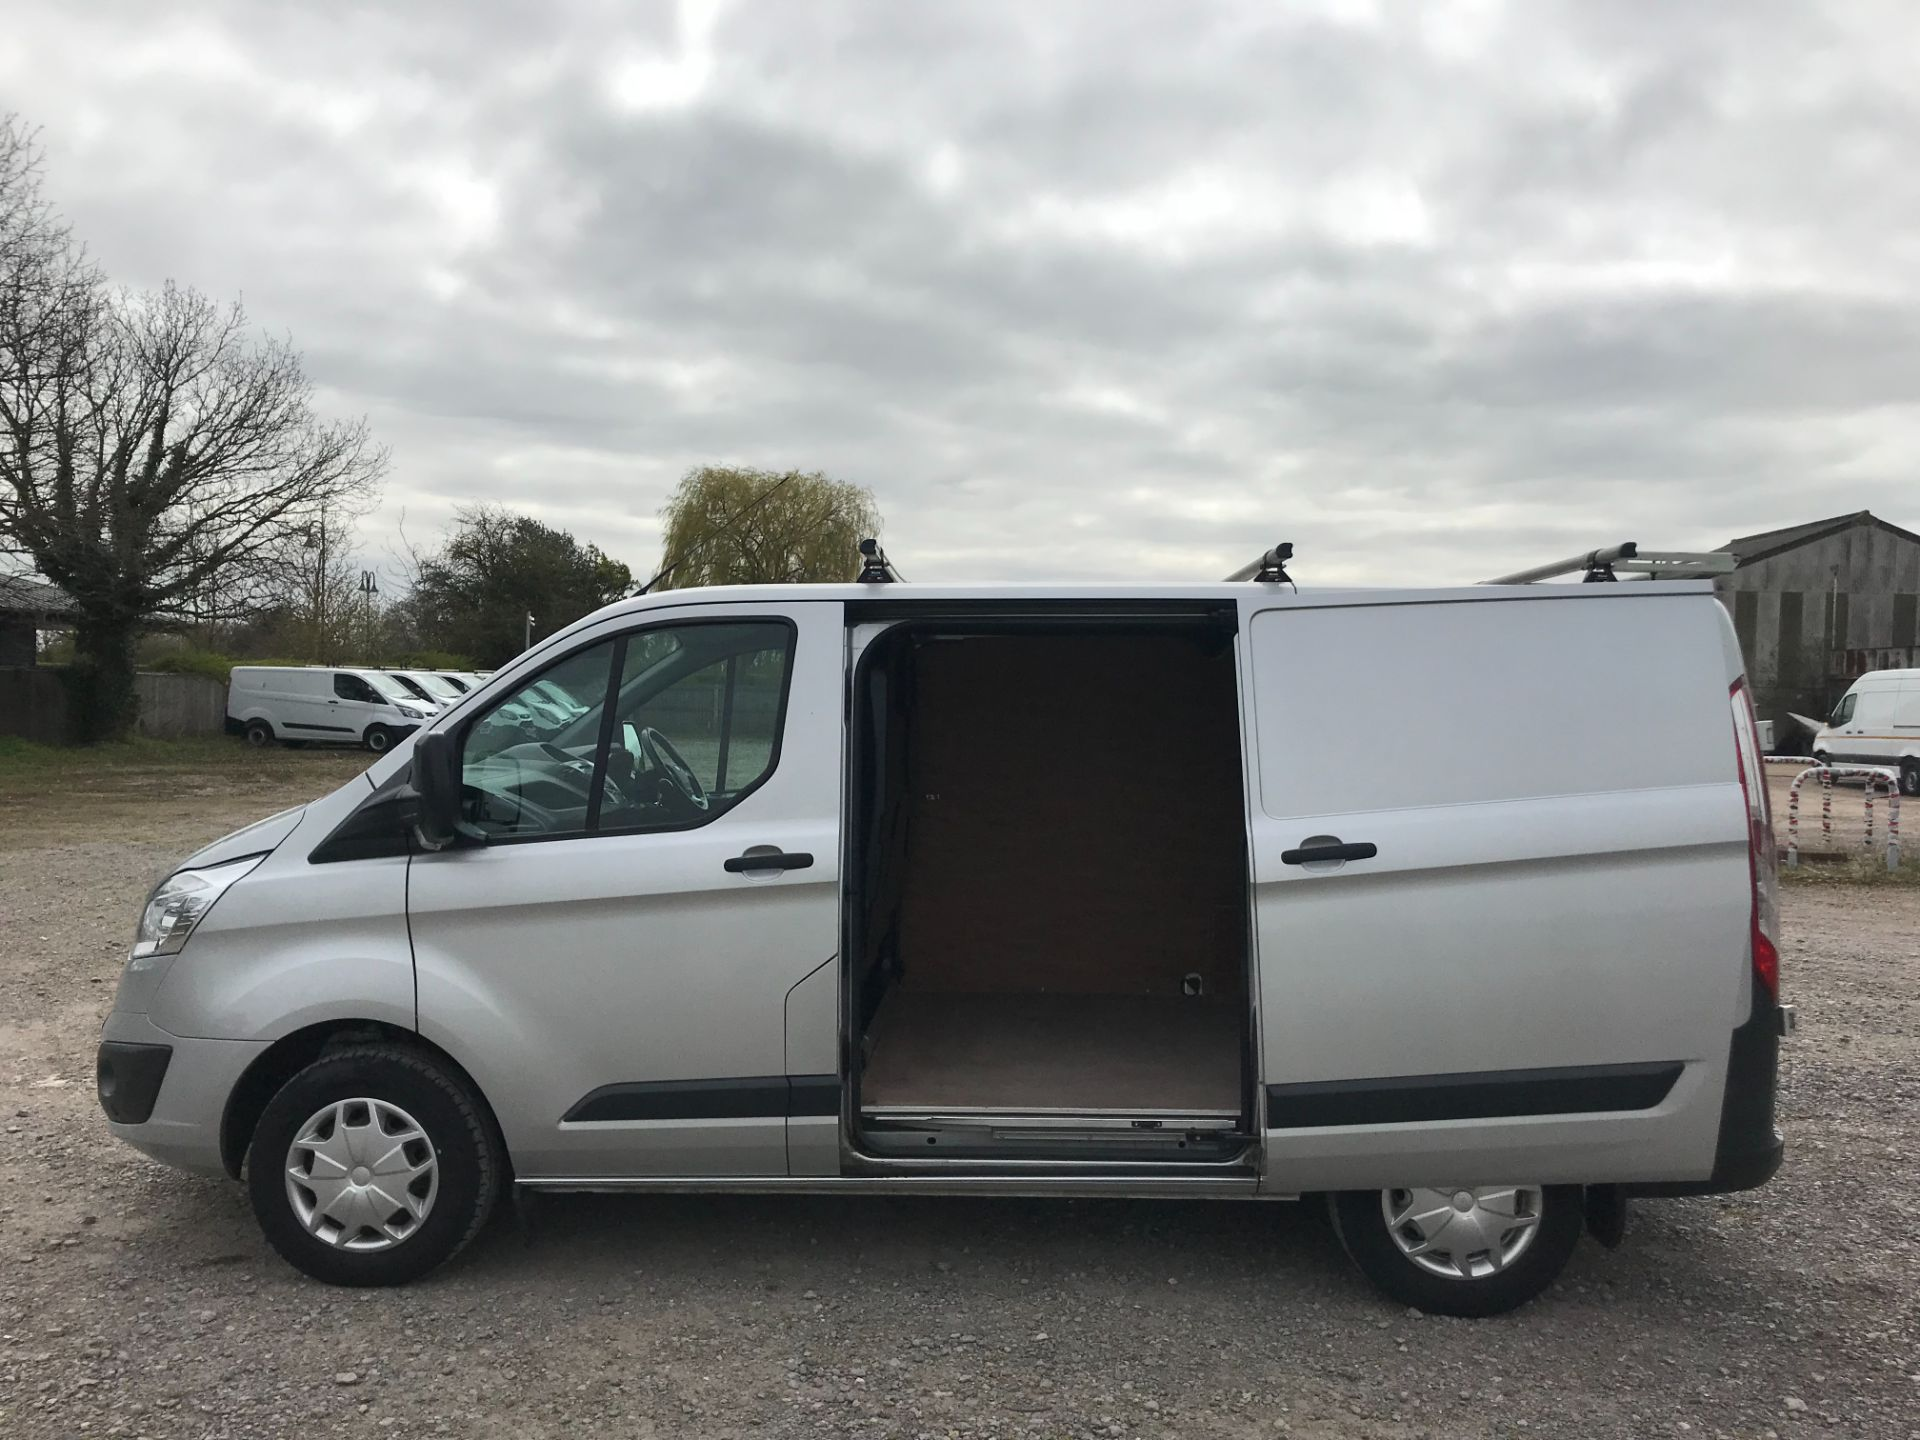 2016 Ford Transit Custom 270 L1 DIESEL FWD 2.0 TDCI 130PS LOW ROOF TREND VAN EURO 6 (DL66HCJ) Image 9